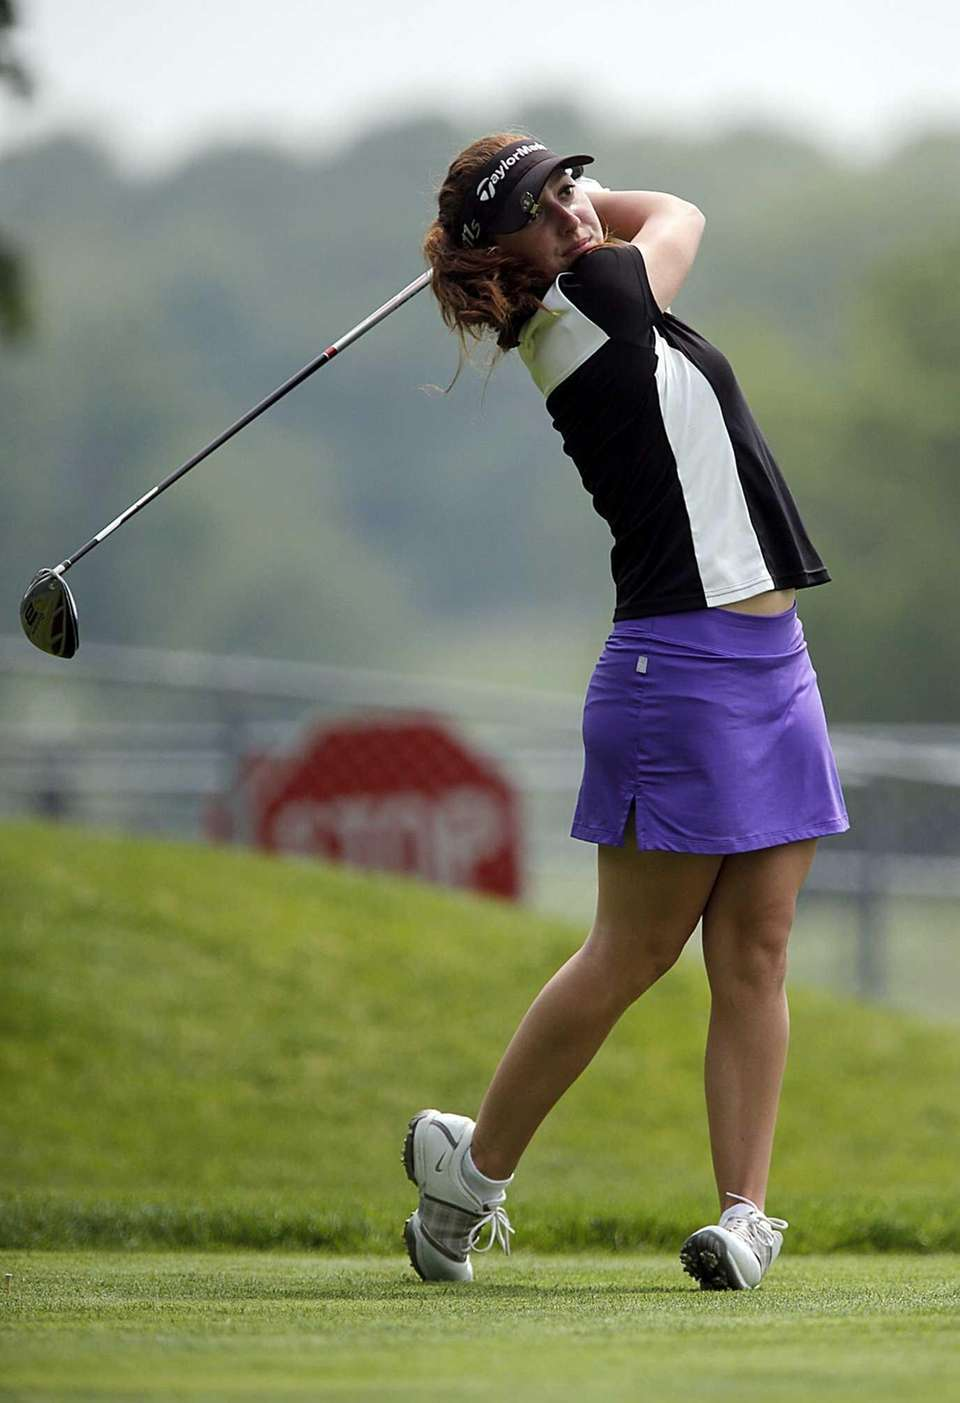 Farmingdale's Alix Lowe tees off on the fifteenth